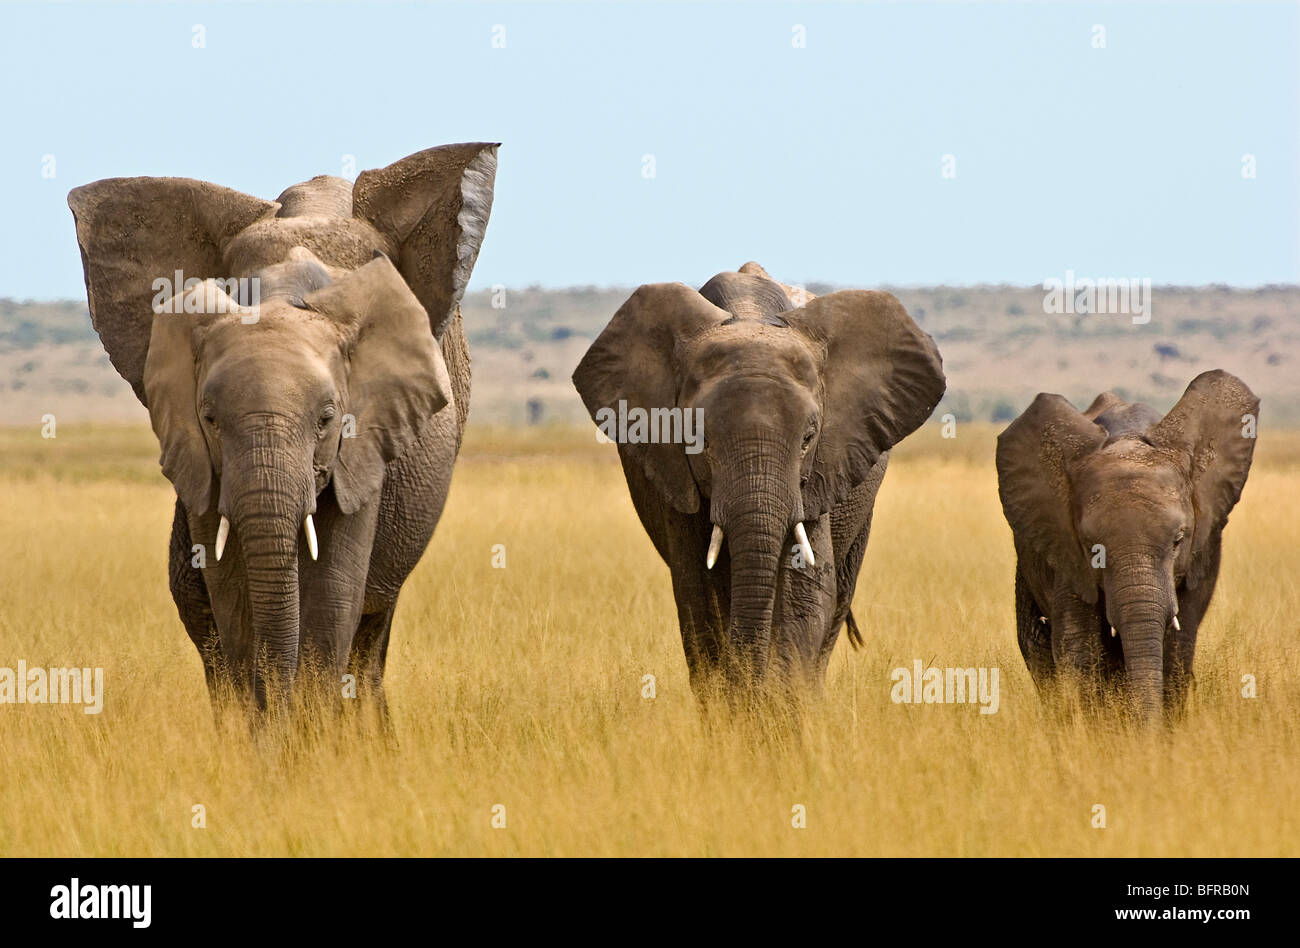 A small family group of elephants makes its way across the open grasslands of Amboseli's plains. - Stock Image